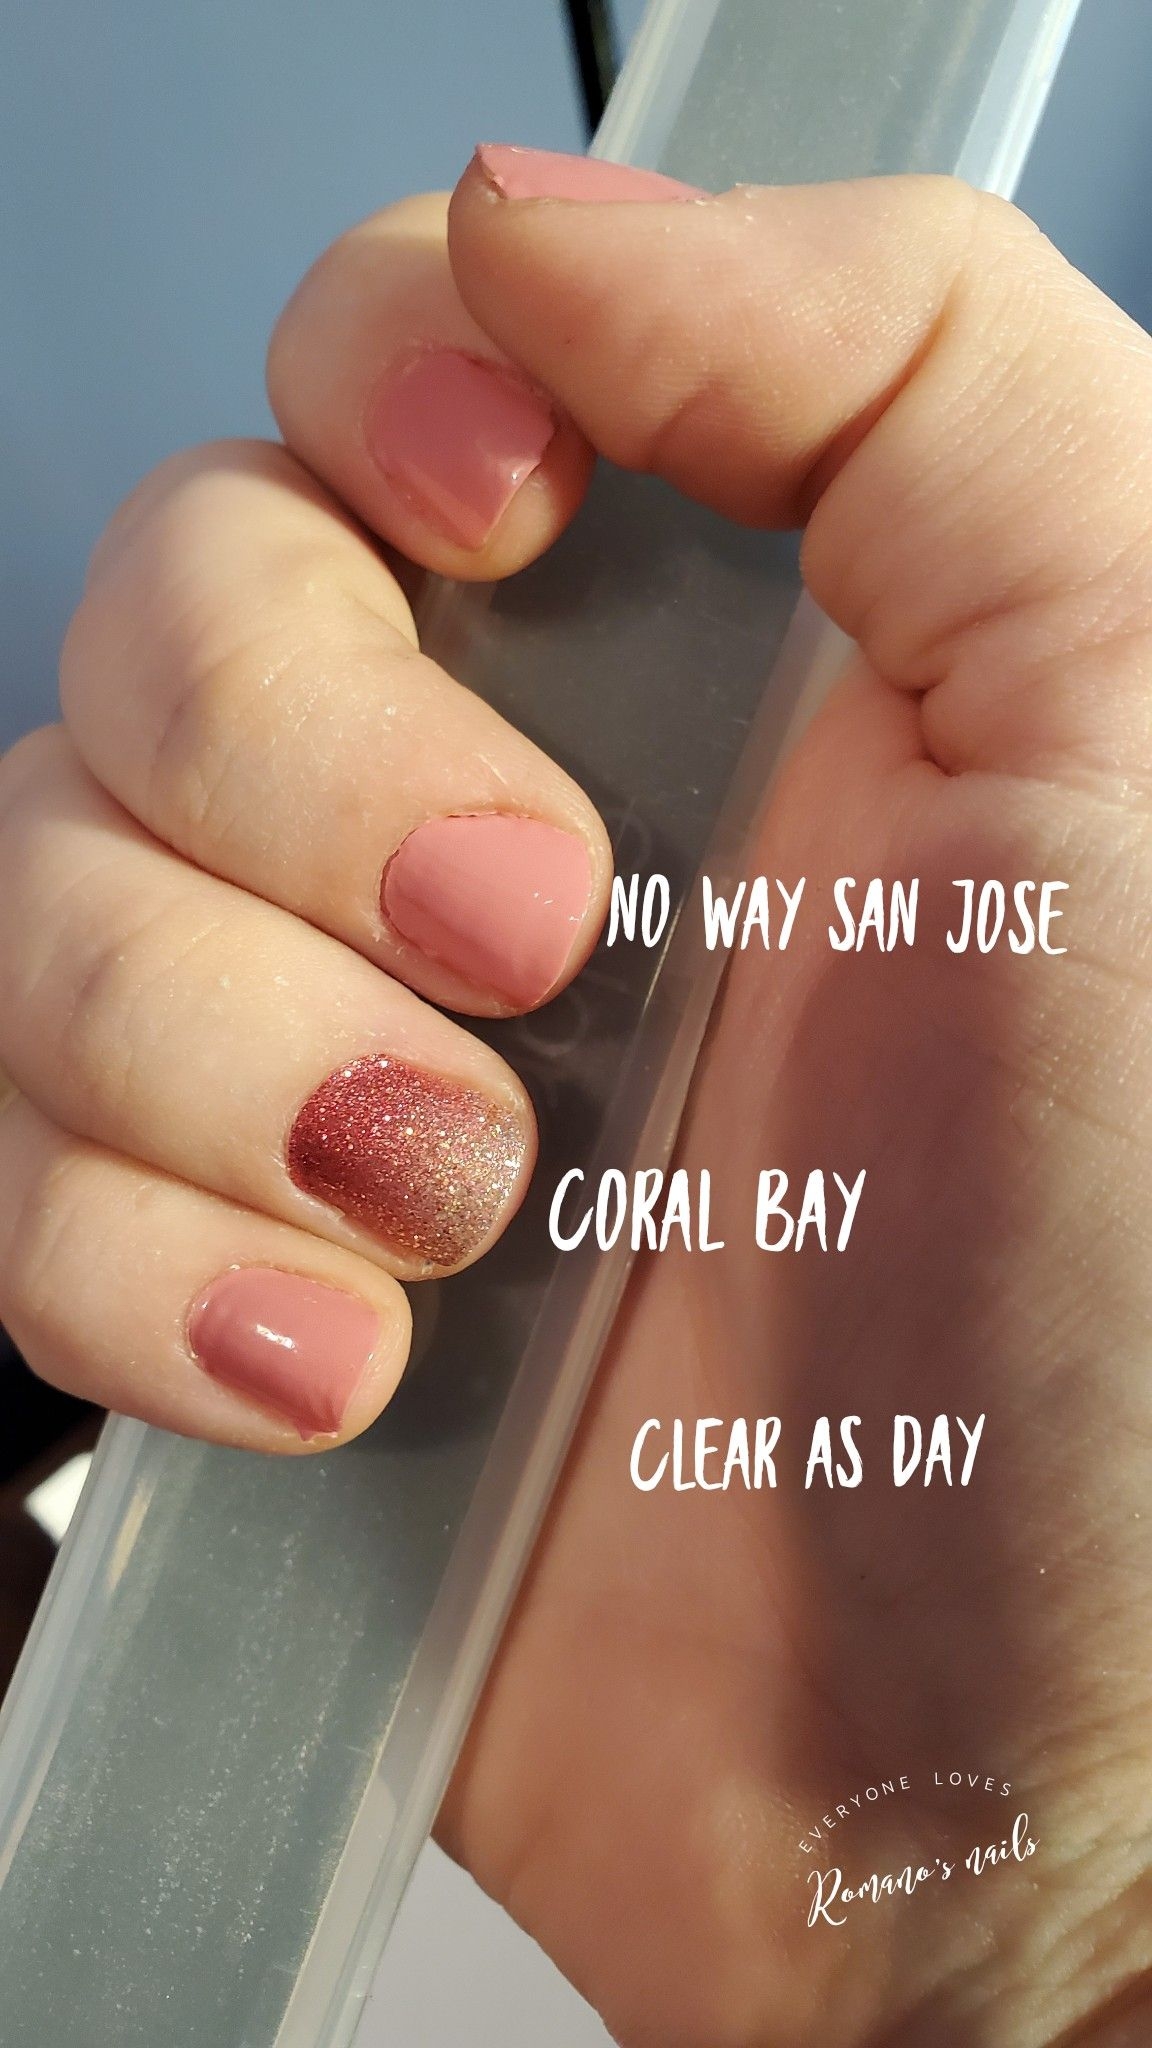 No Way San Jose and Coral Bay Accent with Clear as Day